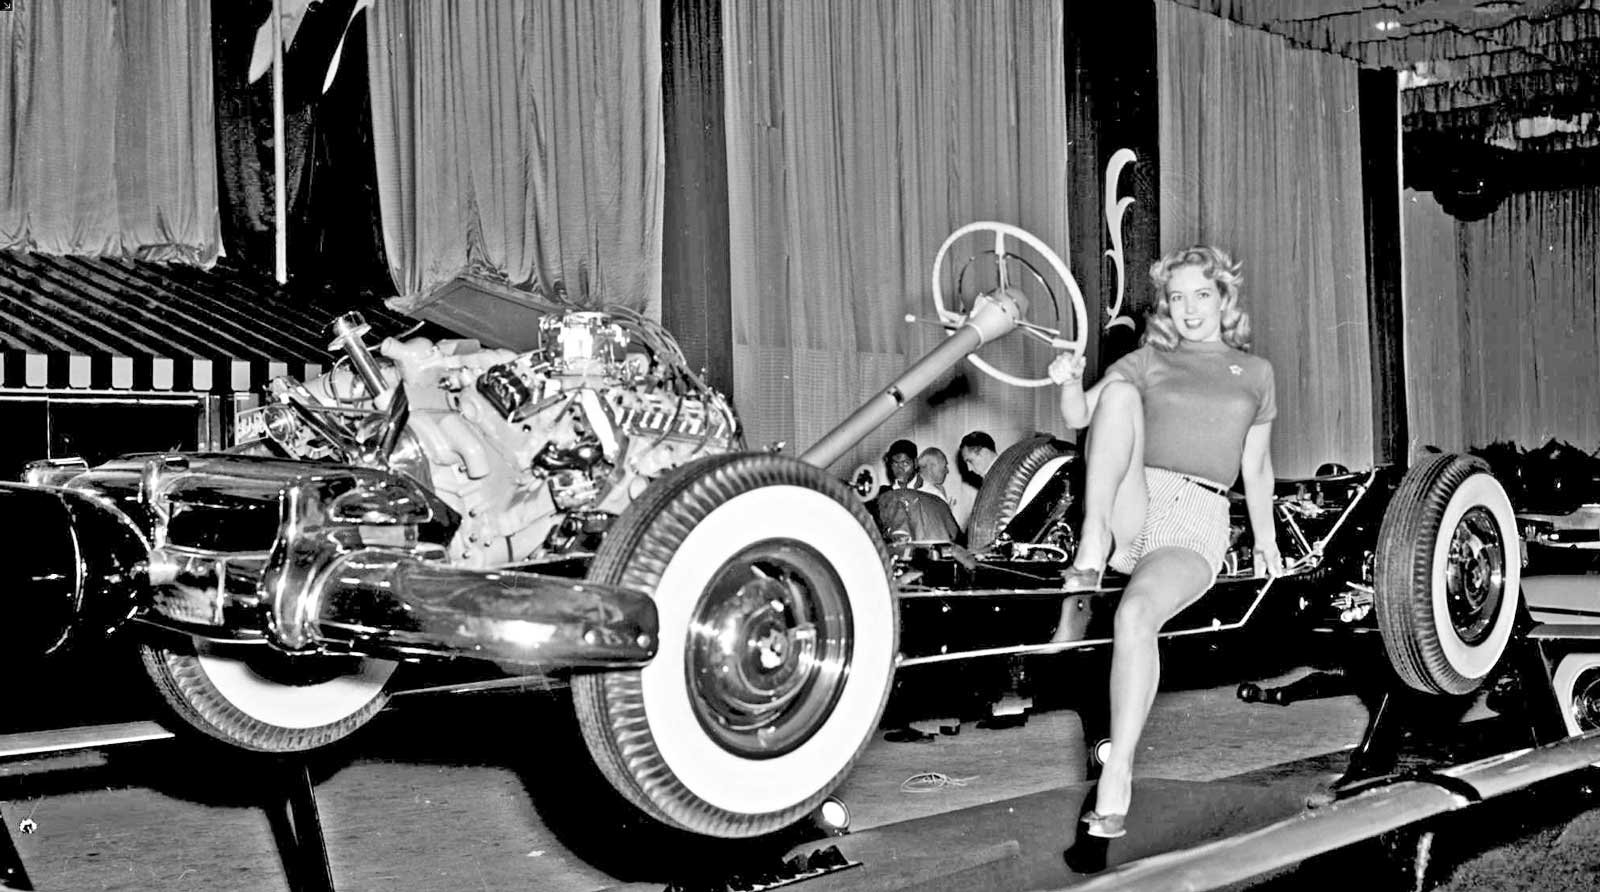 1949 oldsmobile 303 engine diagram wiring library 350 Rocket Engine Horsepower shirley buchanan below posing with the 1949 oldsmobile display chassis at the los angeles automobile show